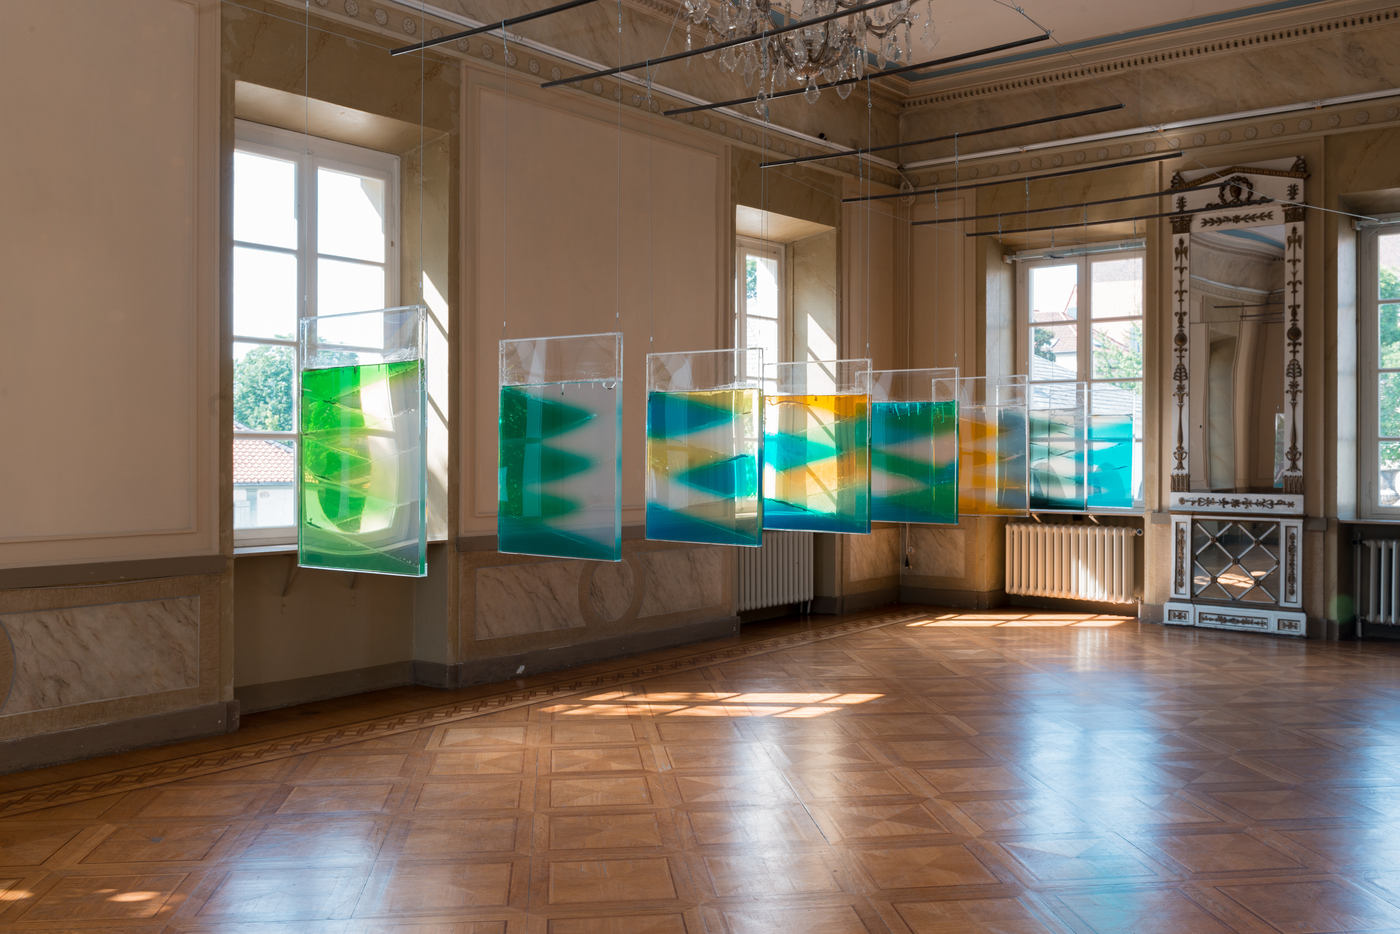 ProcessPerformancePresence_Troemel at Kunstverein Braunschweig 3